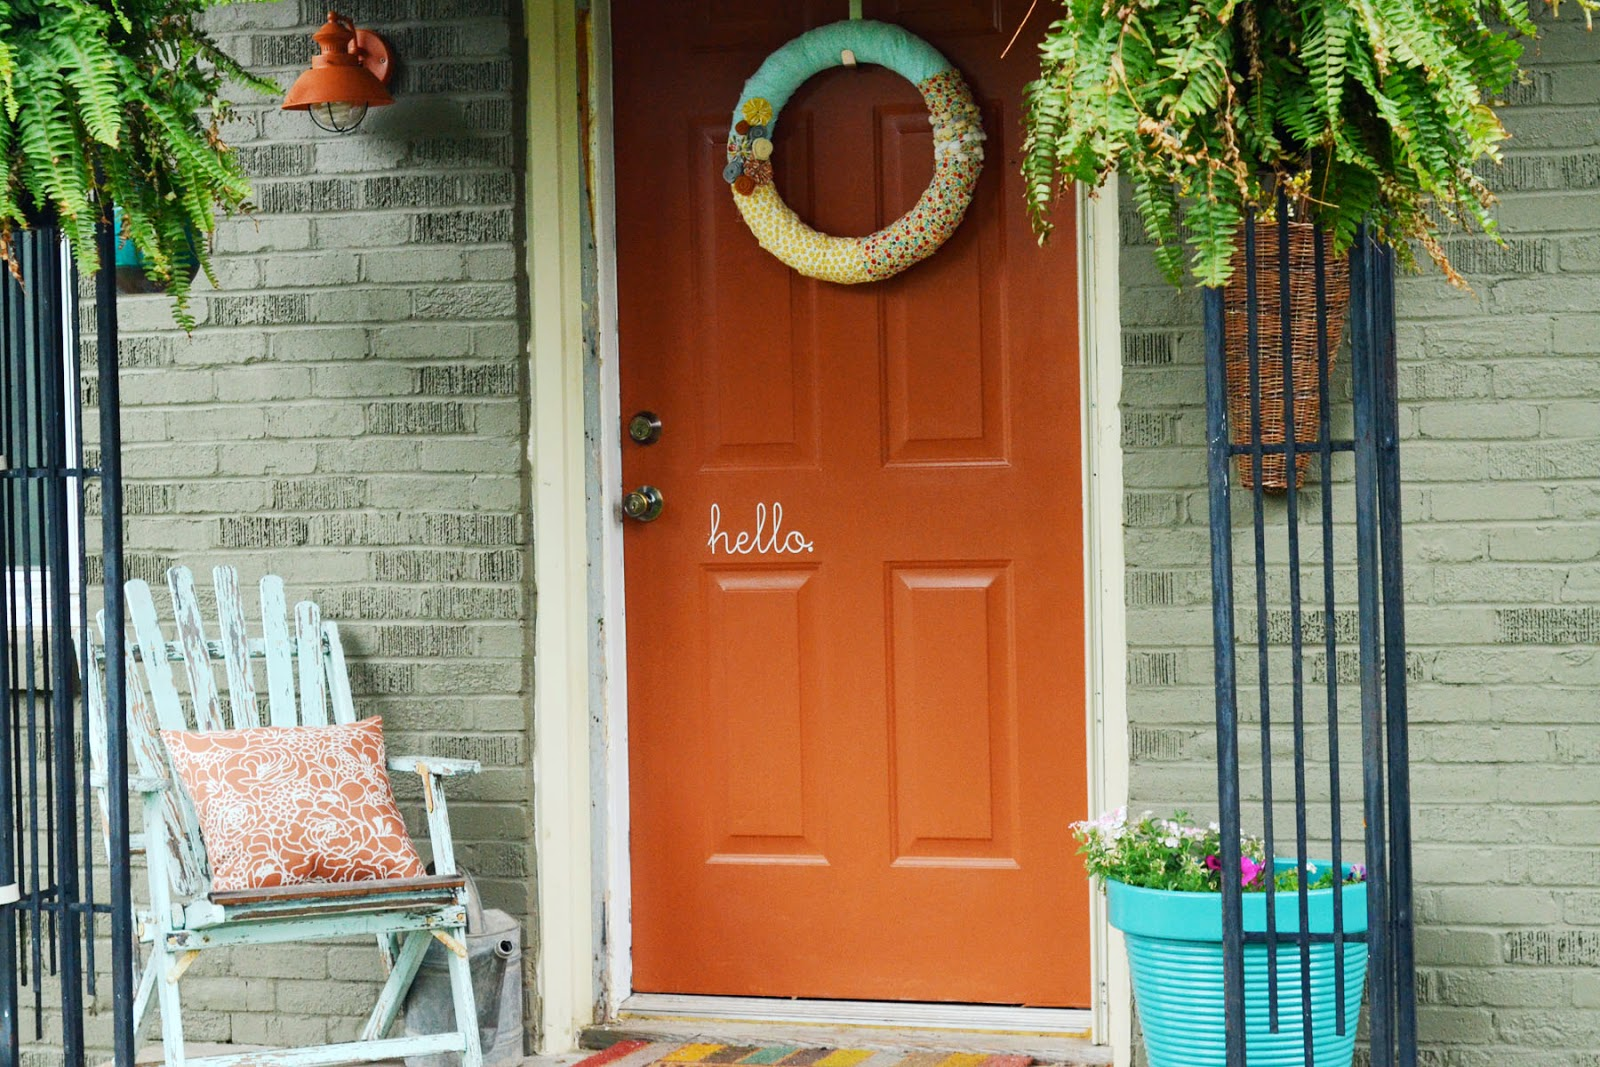 The Painted Door Quotes, Quotations & Sayings 2018